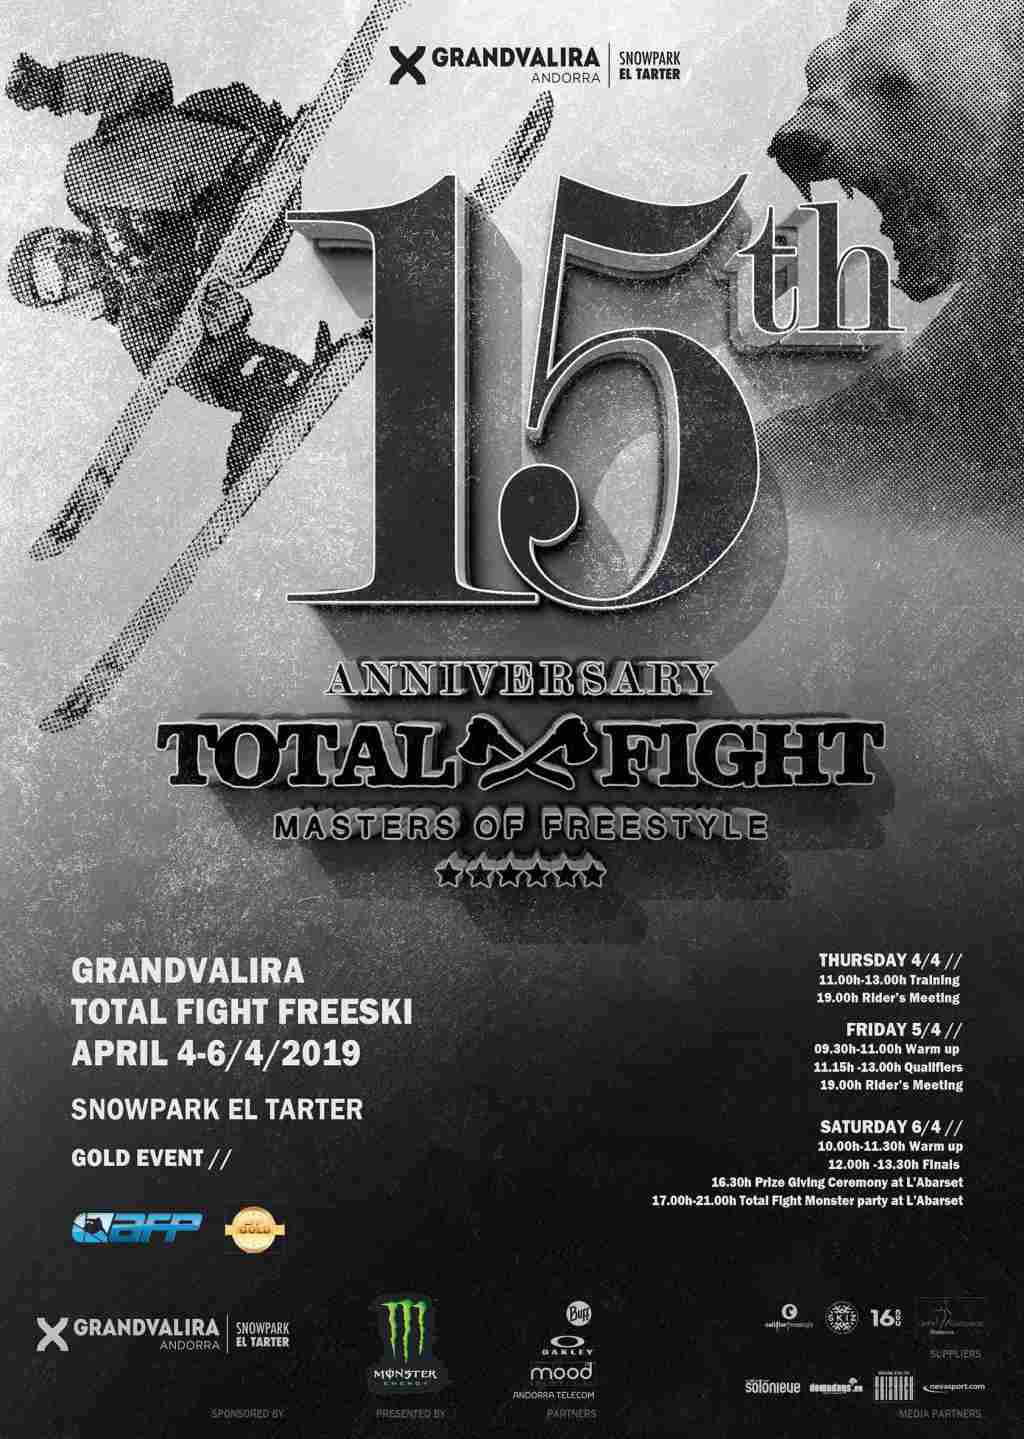 Grandvalira Total Fight 2019_3